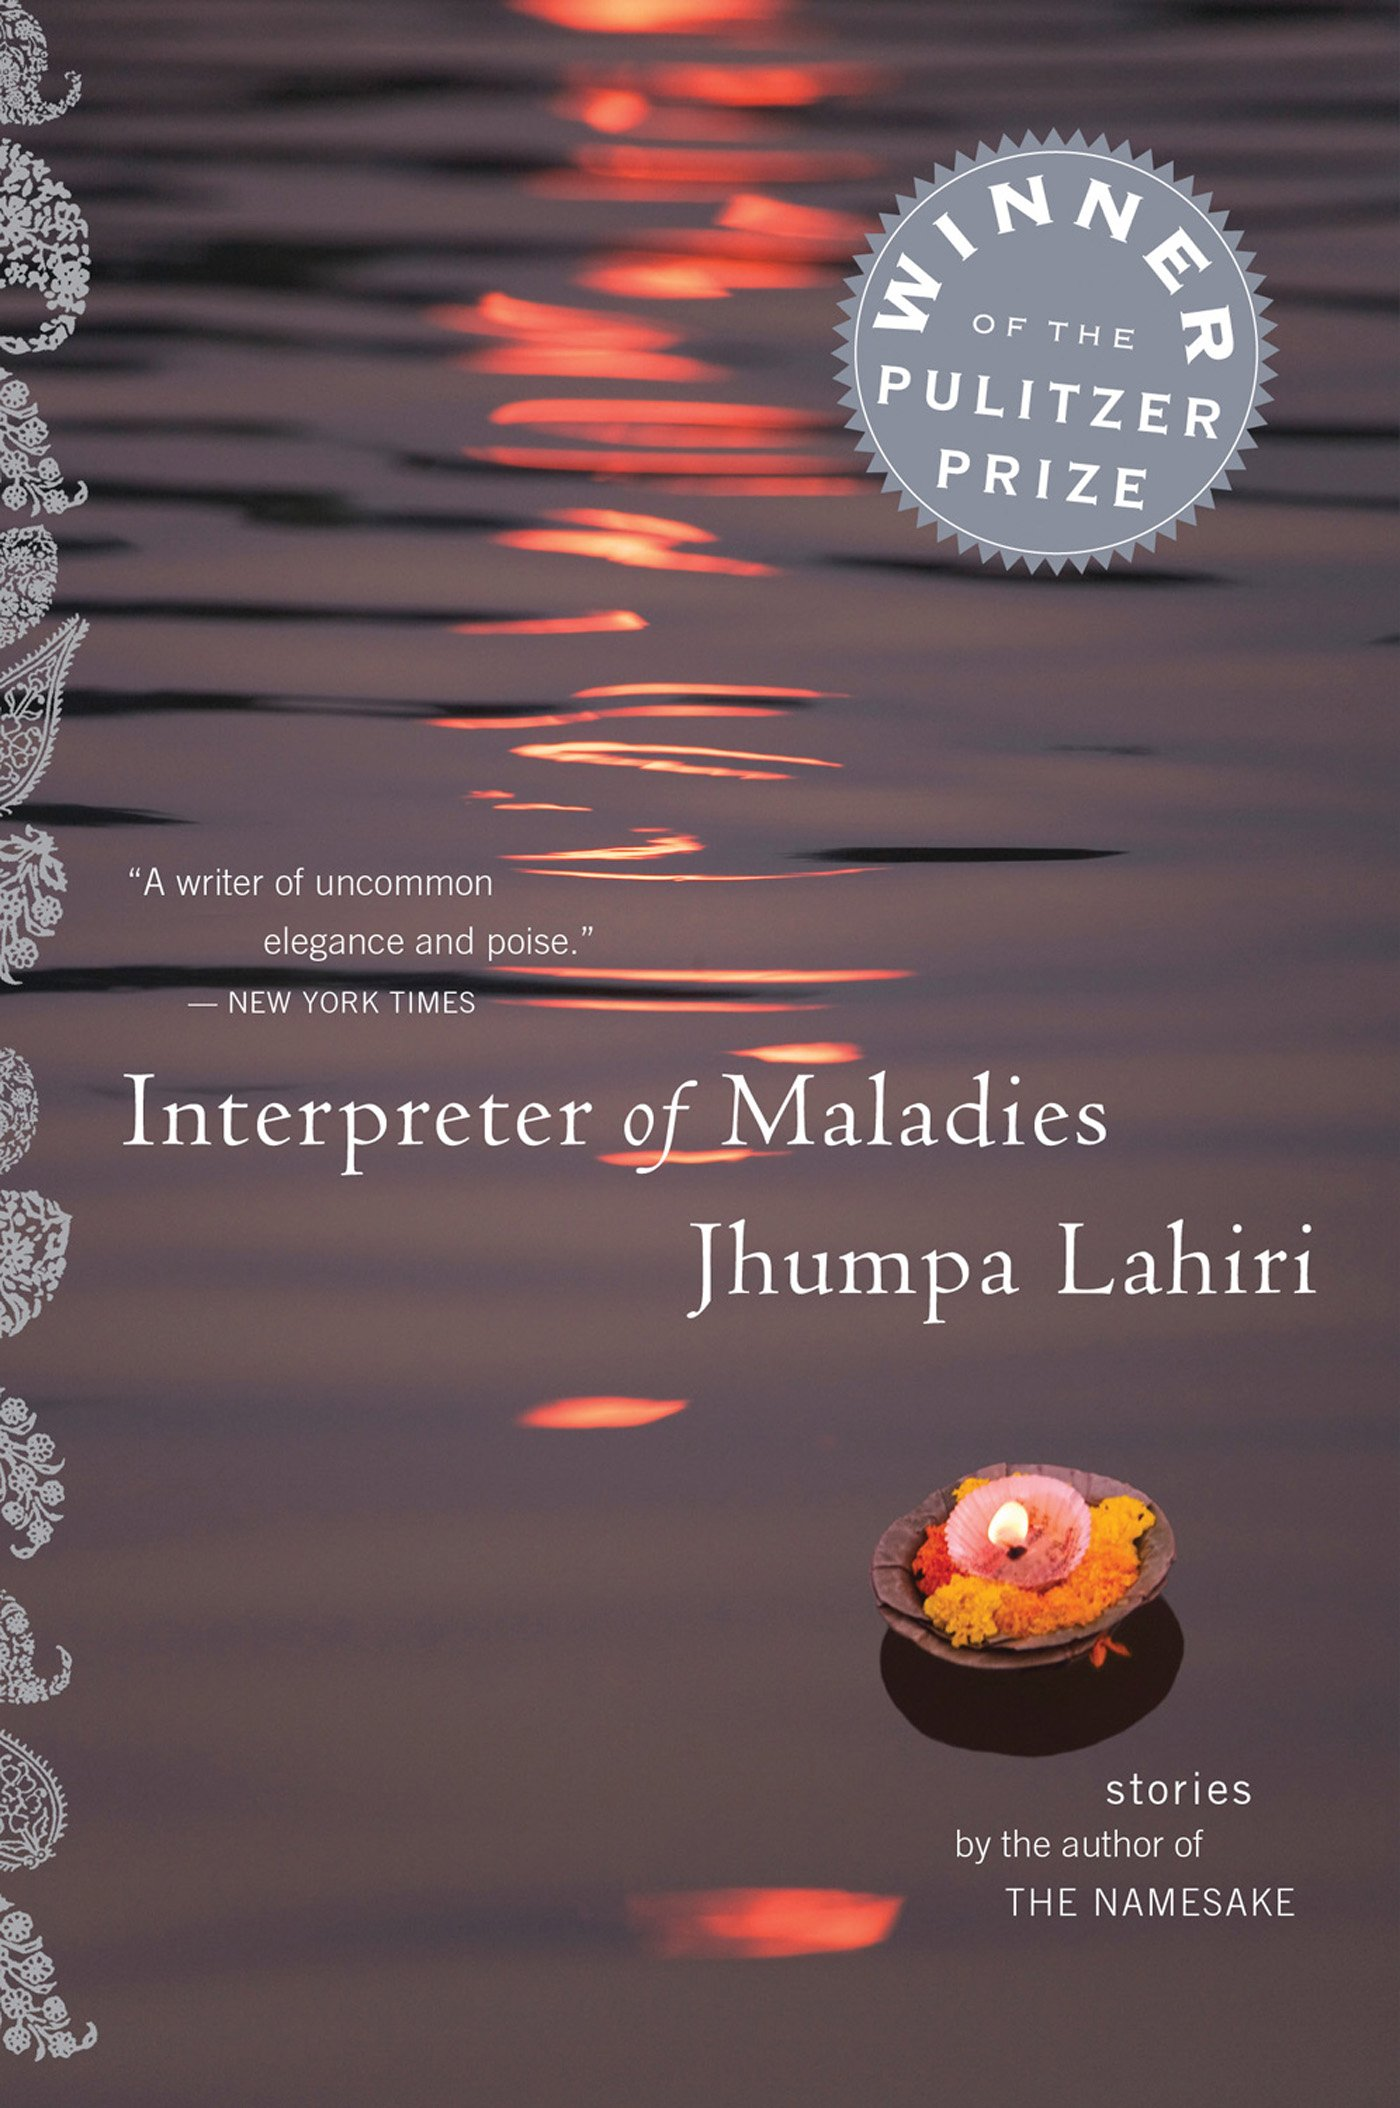 Interpreter of Maladies - By Jhumpa LahiriNavigating between the Indian traditions they've inherited and the baffling new world, the characters in Jhumpa Lahiri's elegant, touching stories seek love beyond the barriers of culture and generations. In